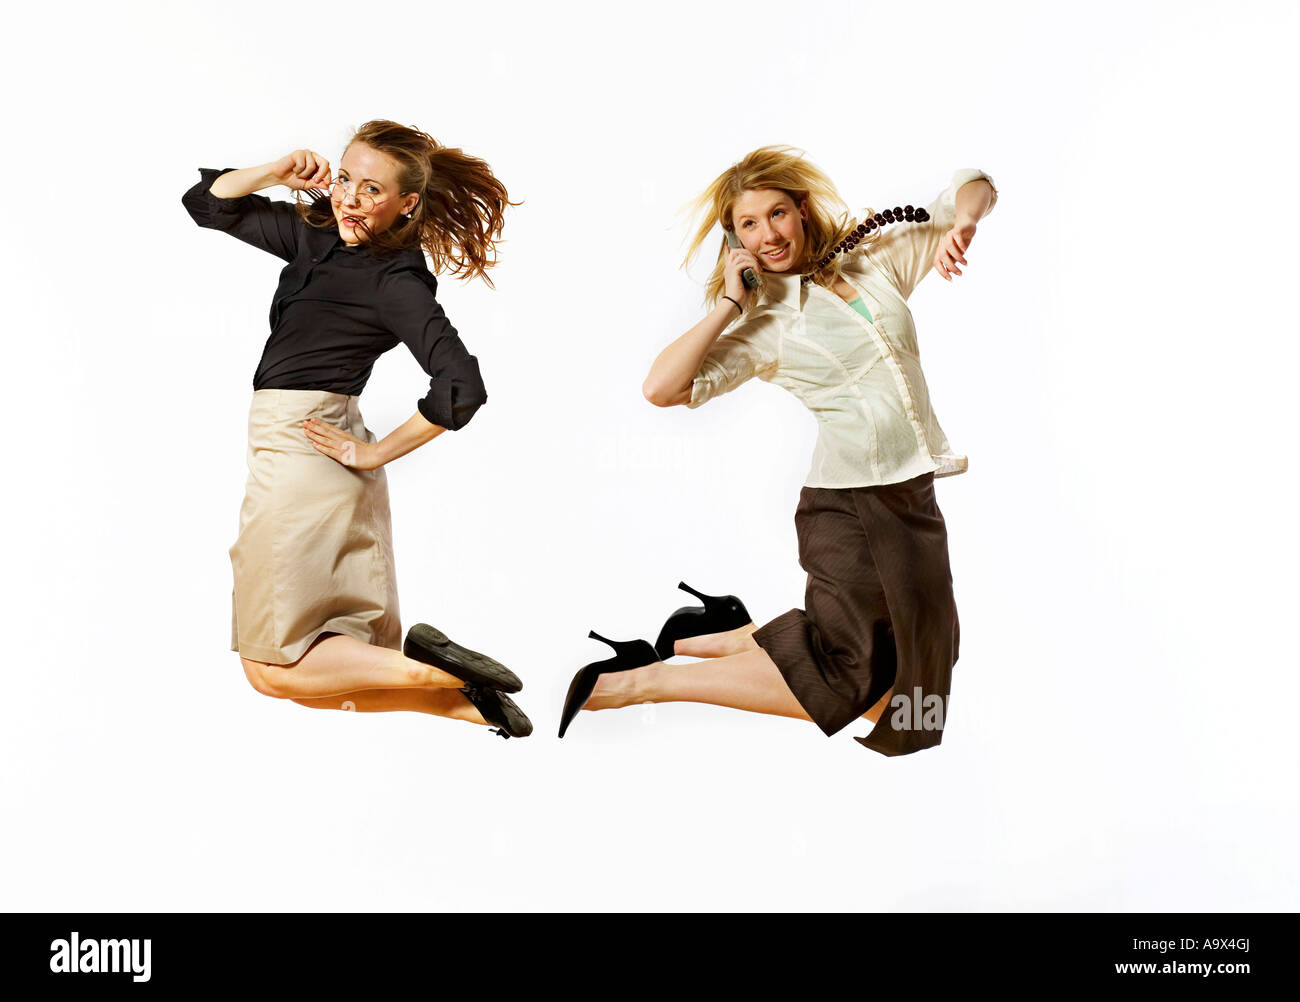 two lovely young women jumping in the air, one holding her glasses, the other with a mobile or cell phone to her - Stock Image